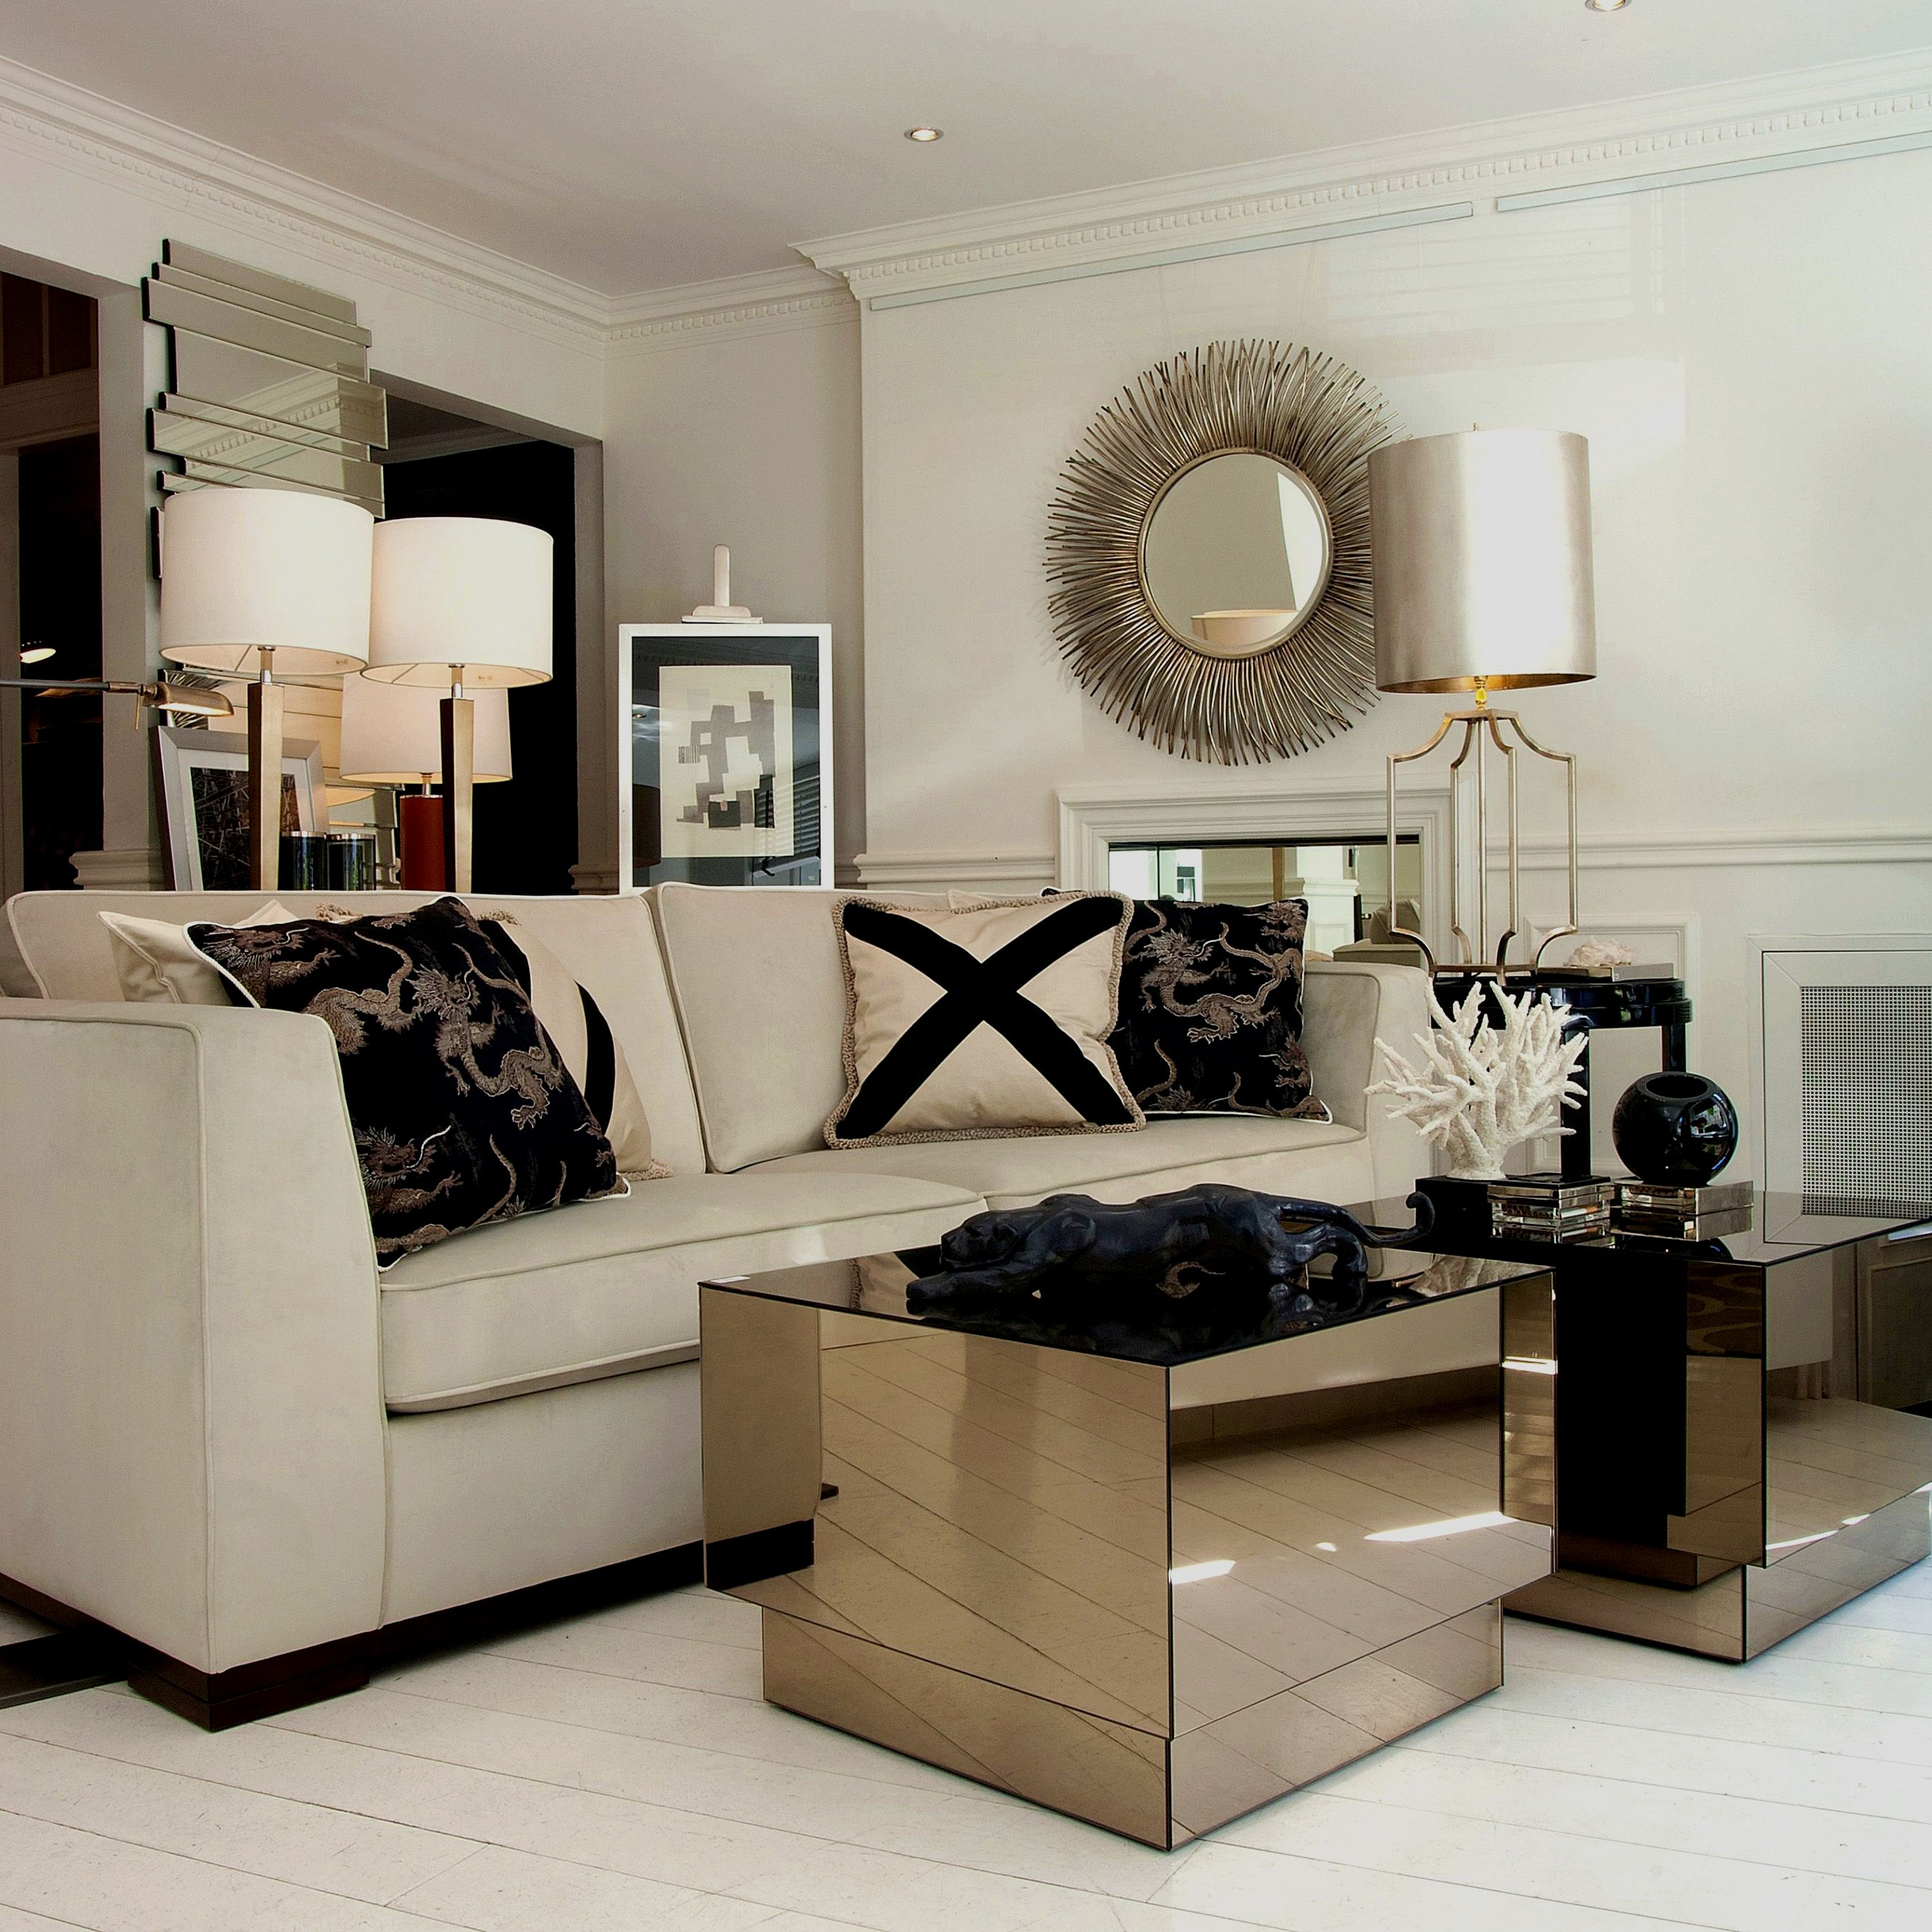 Living Room Decor Guide A Lovely Addition To Many Bathrooms Is A Pedestal Type Bath Tub These Living Room Remodel Living Room Decor Modern Living Room Decor